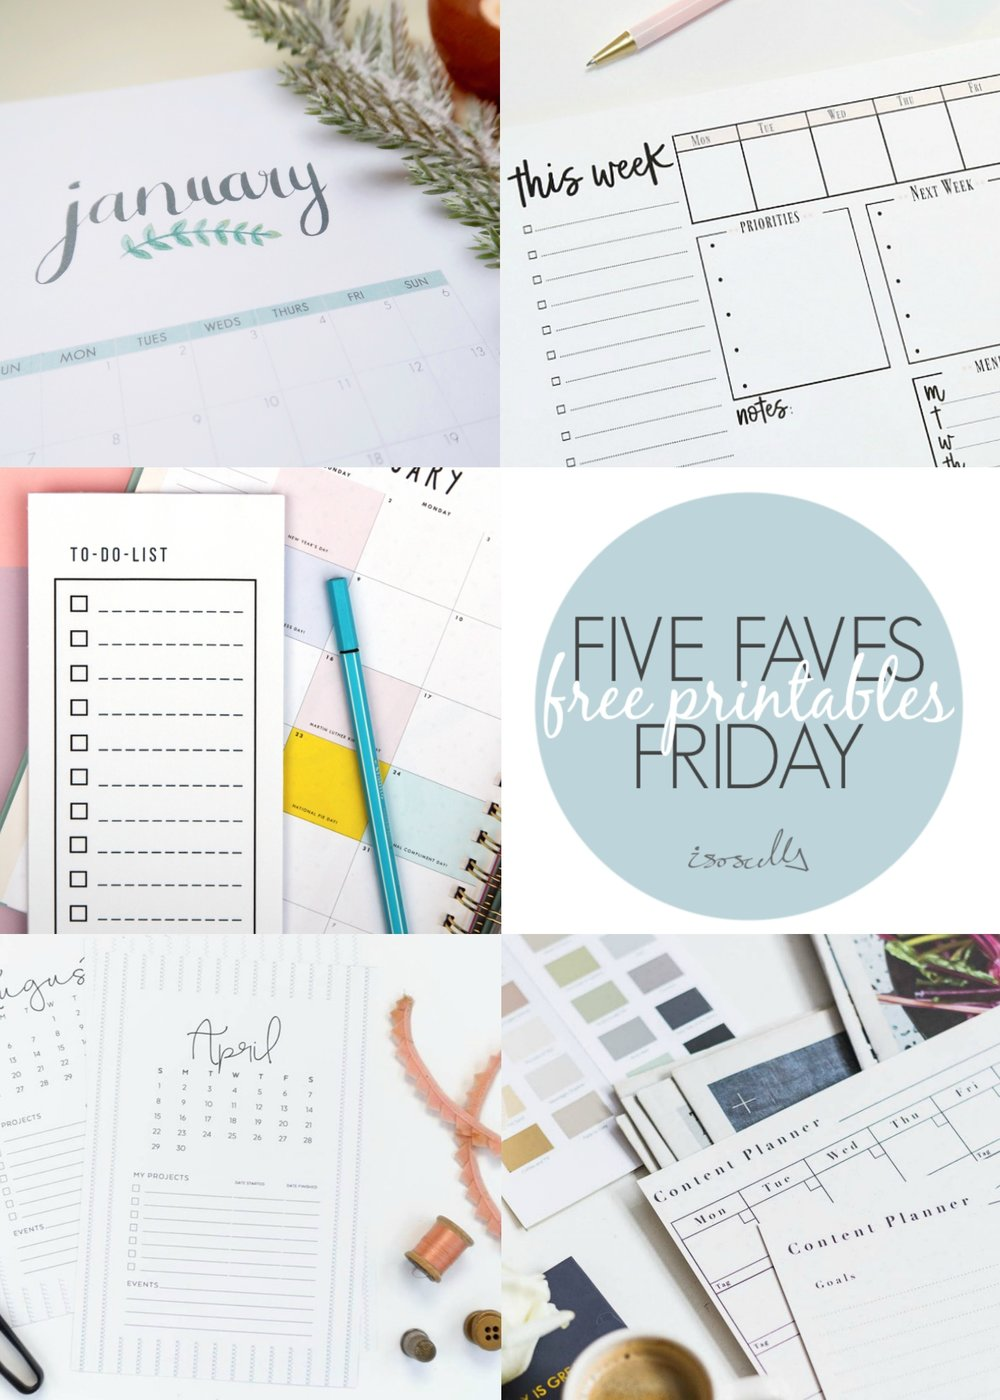 Five Faves Friday - Free Printables - Isocella